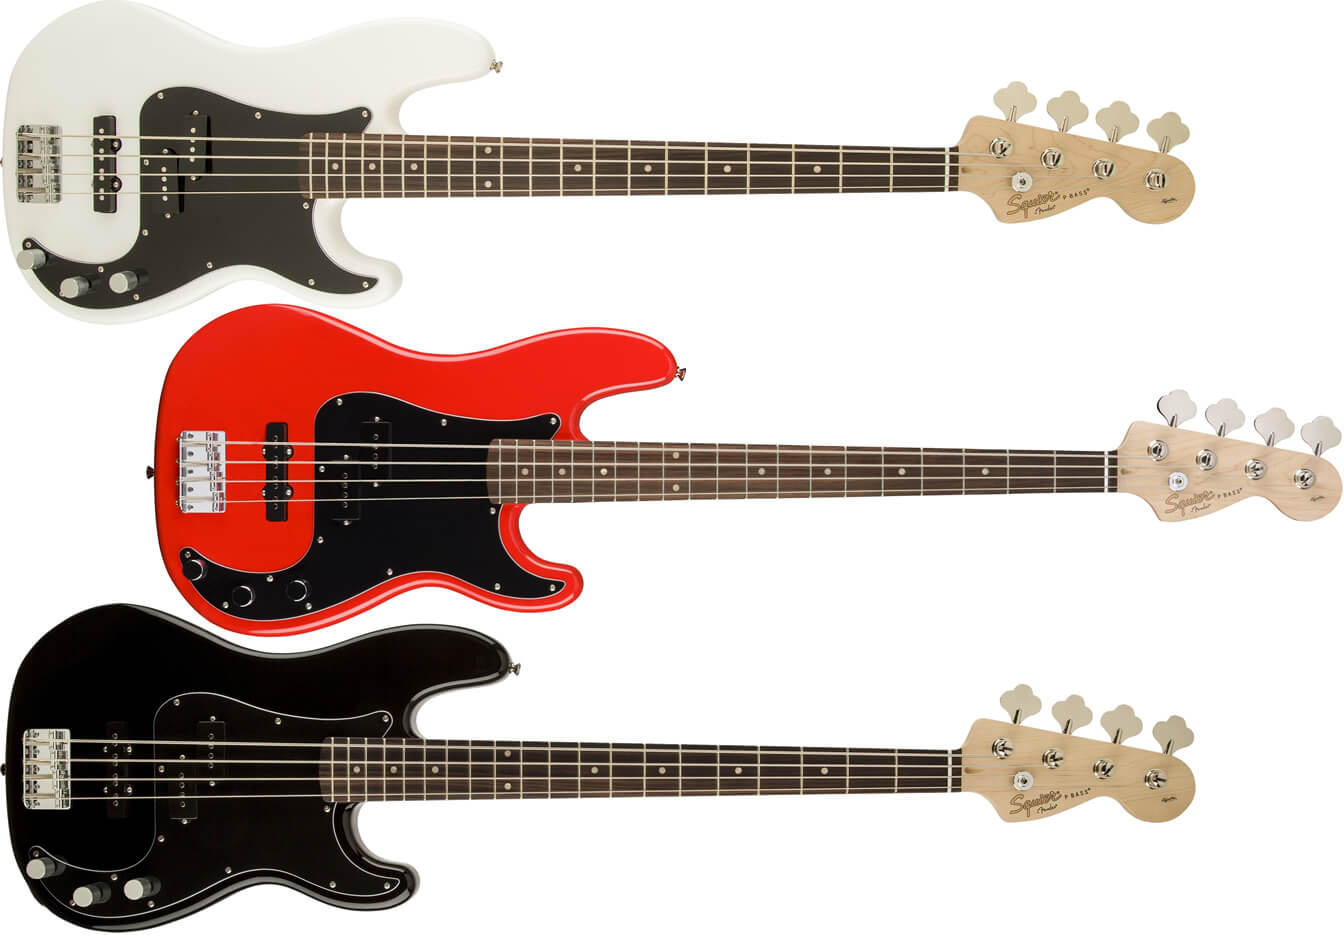 Squier by fender affinity series precision bass PJ